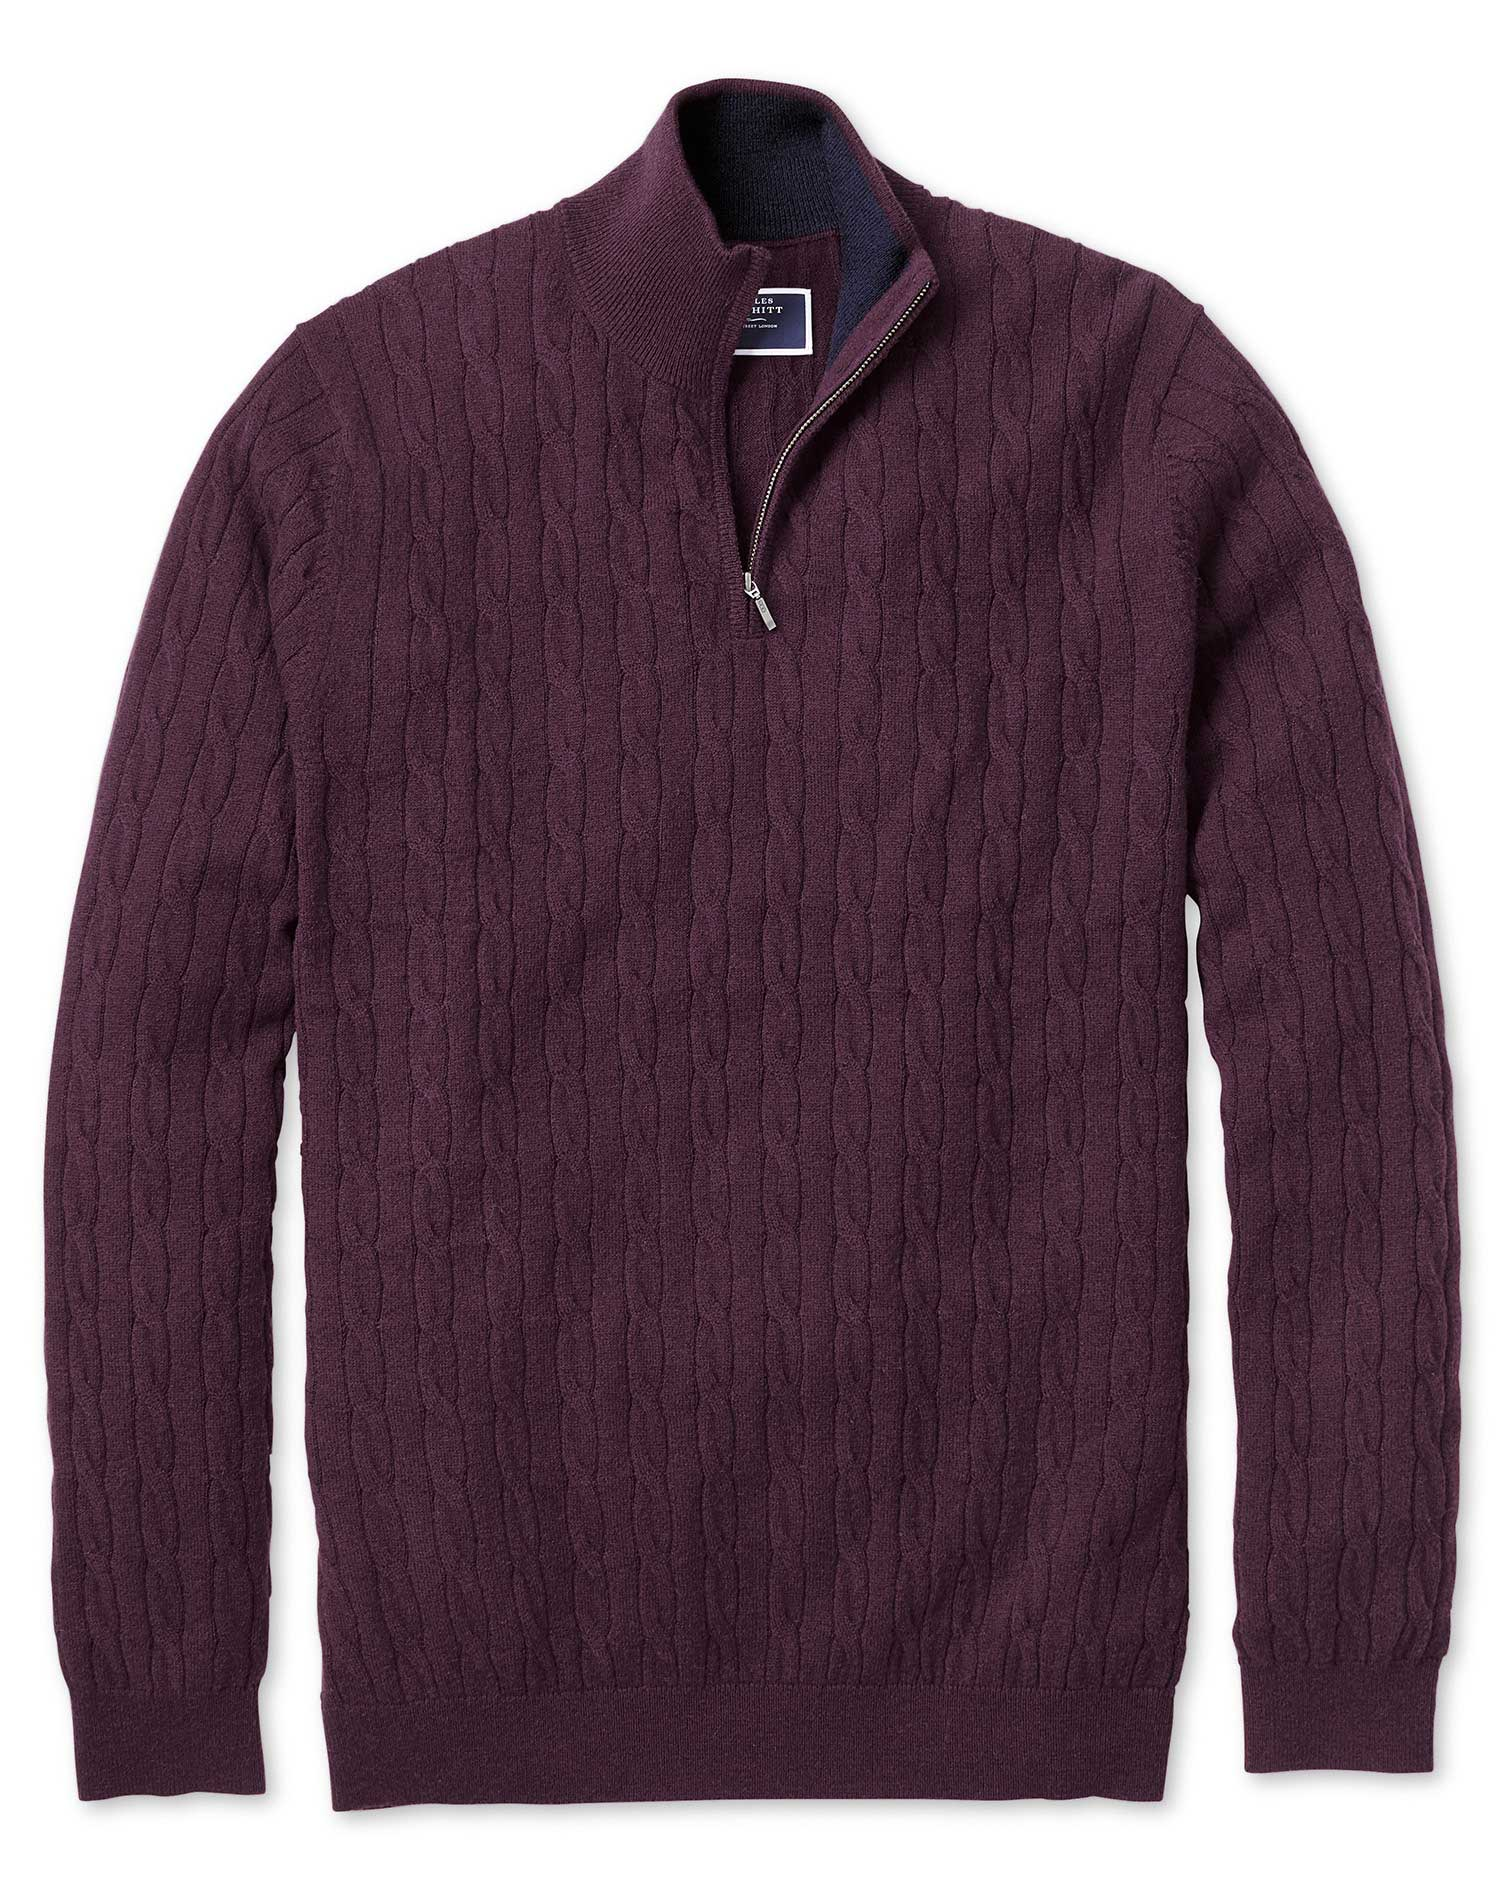 Wine Zip Neck Lambswool Cable Knit Jumper Size Small by Charles Tyrwhitt